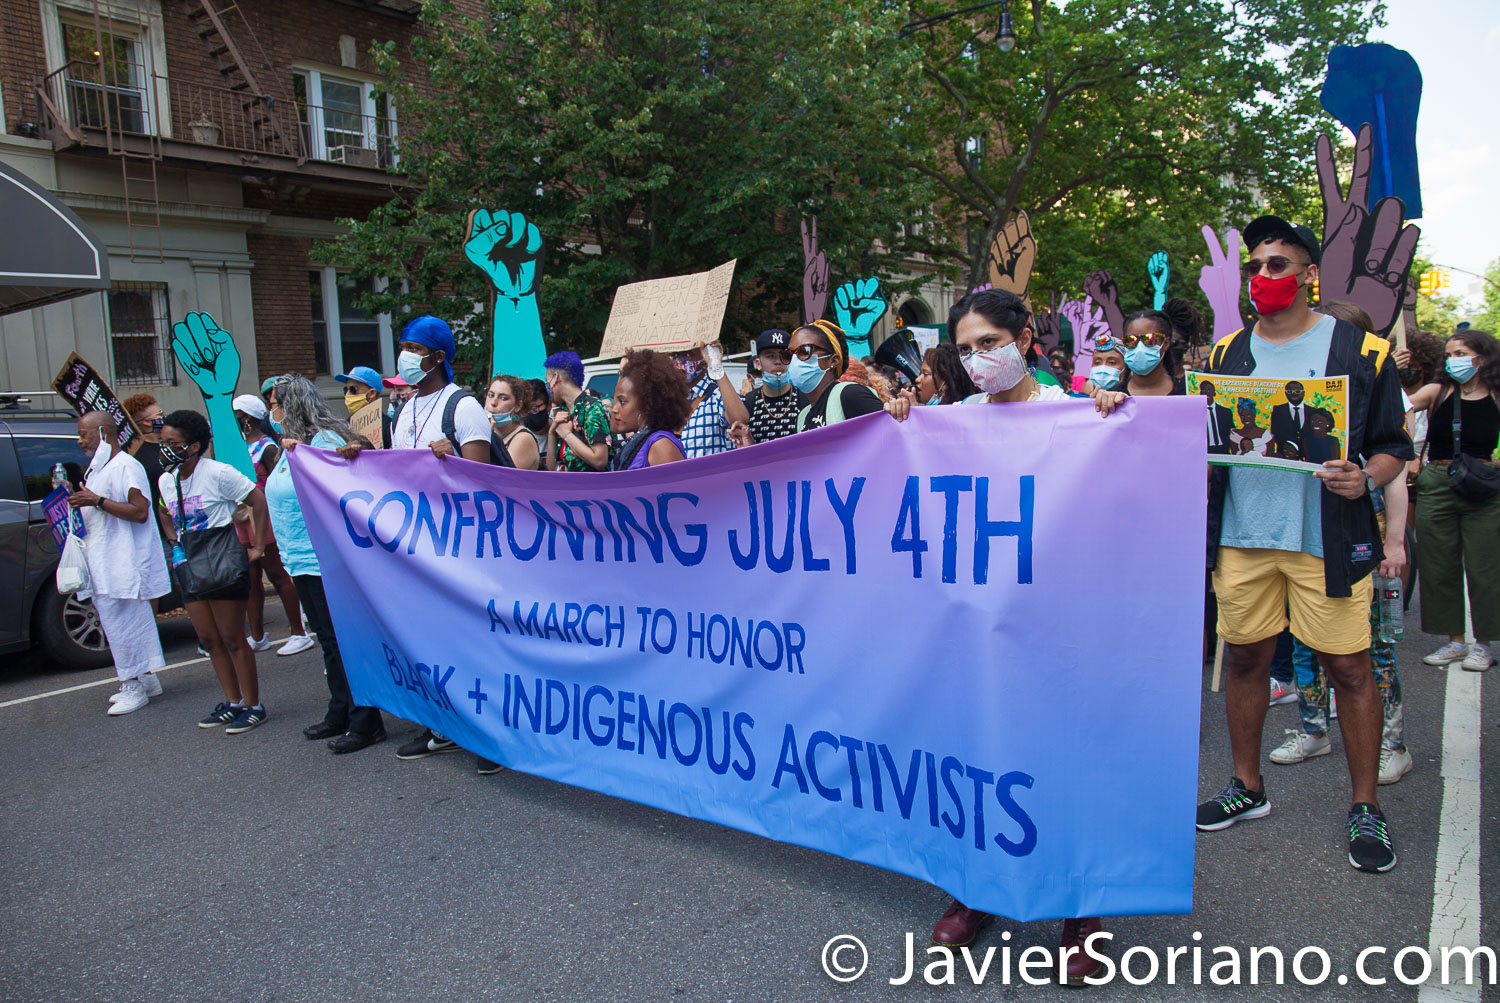 """Saturday, July 4, 2020. Brooklyn. New York City – March and rally: """"Confronting July 4th. A march to honor Black and Indigenous activists."""" The march started in Fort Green Park and end it in Prospect Park, where they had a rally. Demonstrators said, """"This country is founded on the genocide of Indigenous nations, the theft of their land, and the enslavement of African peoples."""" Photo by Javier Soriano/www.JavierSoriano.com"""